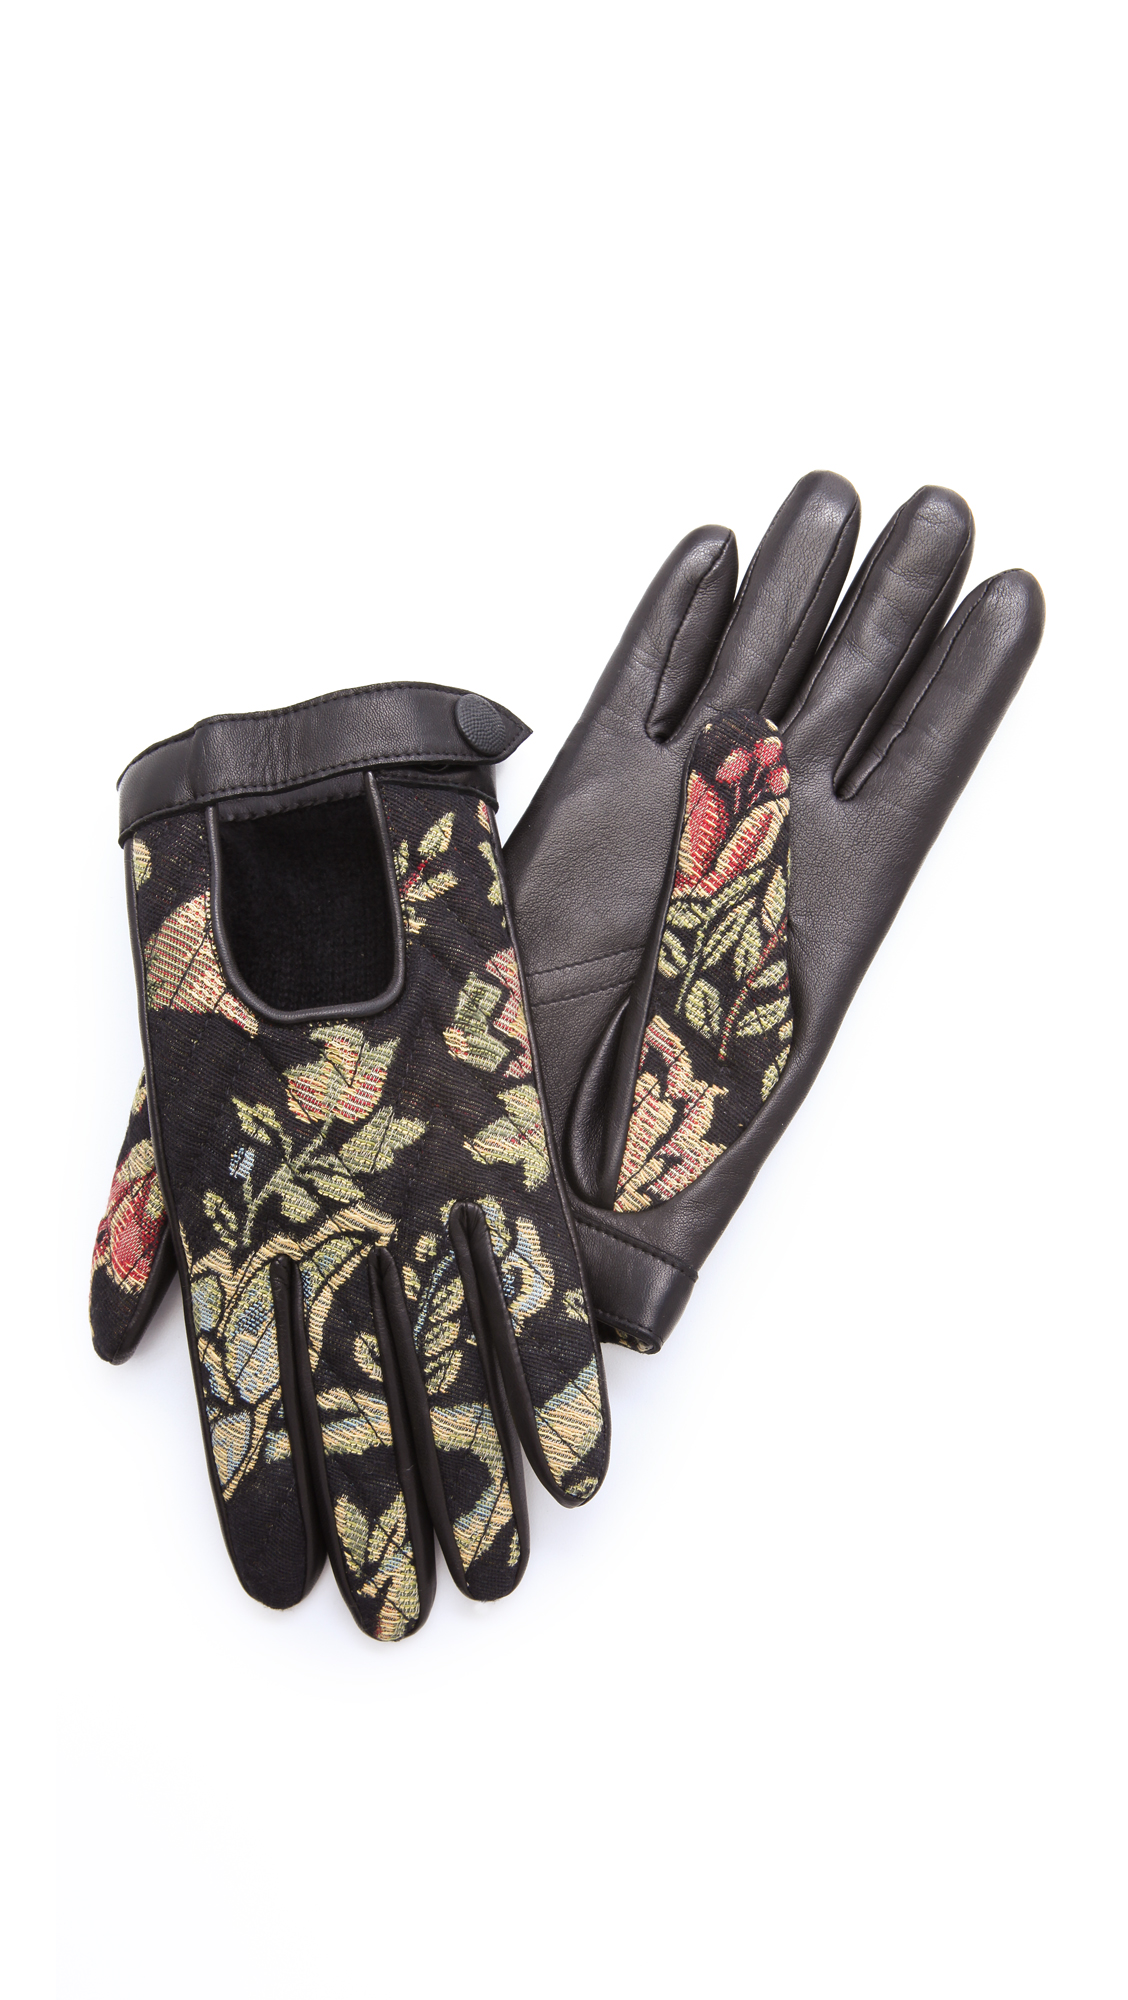 Quilted leather driving gloves -  Quilted Driving Gloves Lyst View Fullscreen